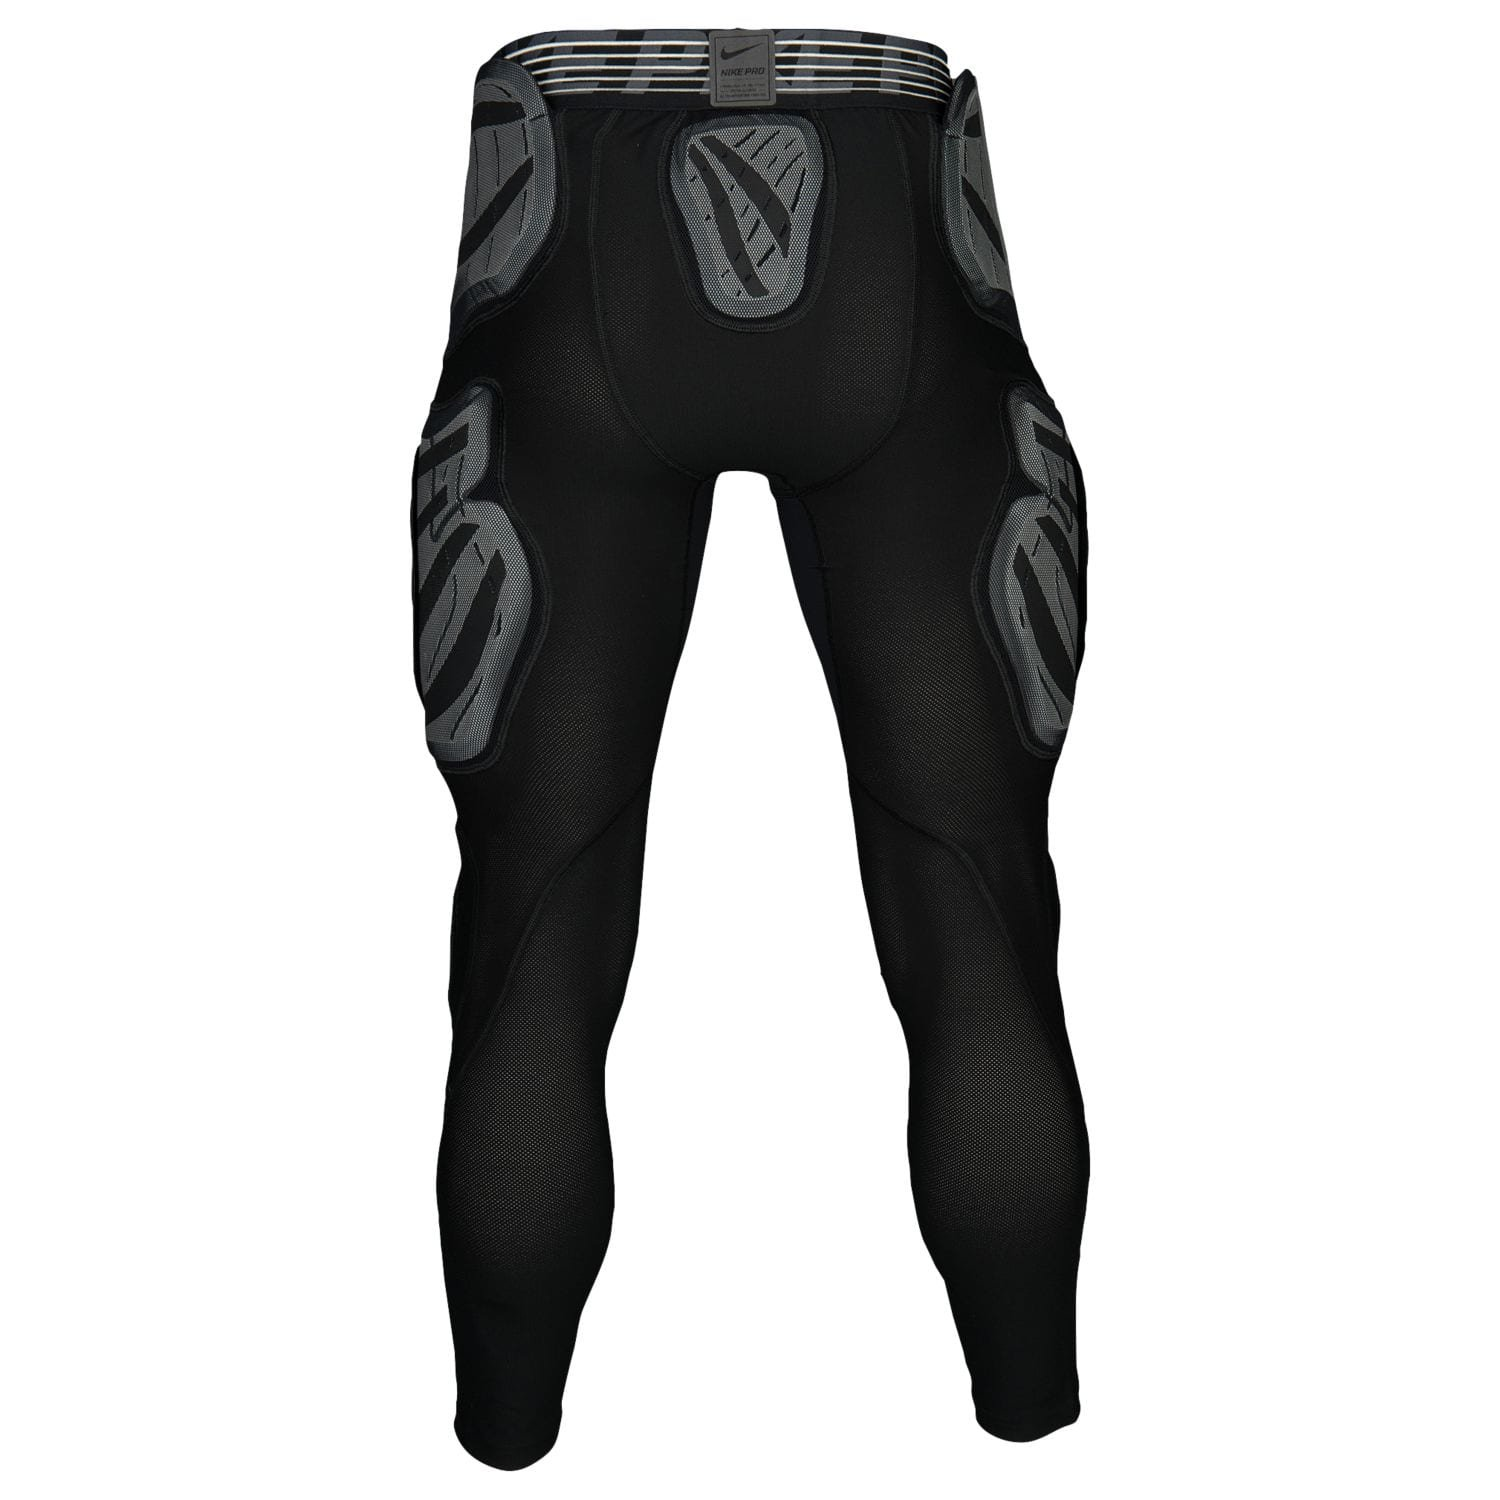 b120859ff3a Amazon.com   Nike Pro Combat Hyperstrong Hard Plate Football Girdle Tights  Pants   Sports   Outdoors